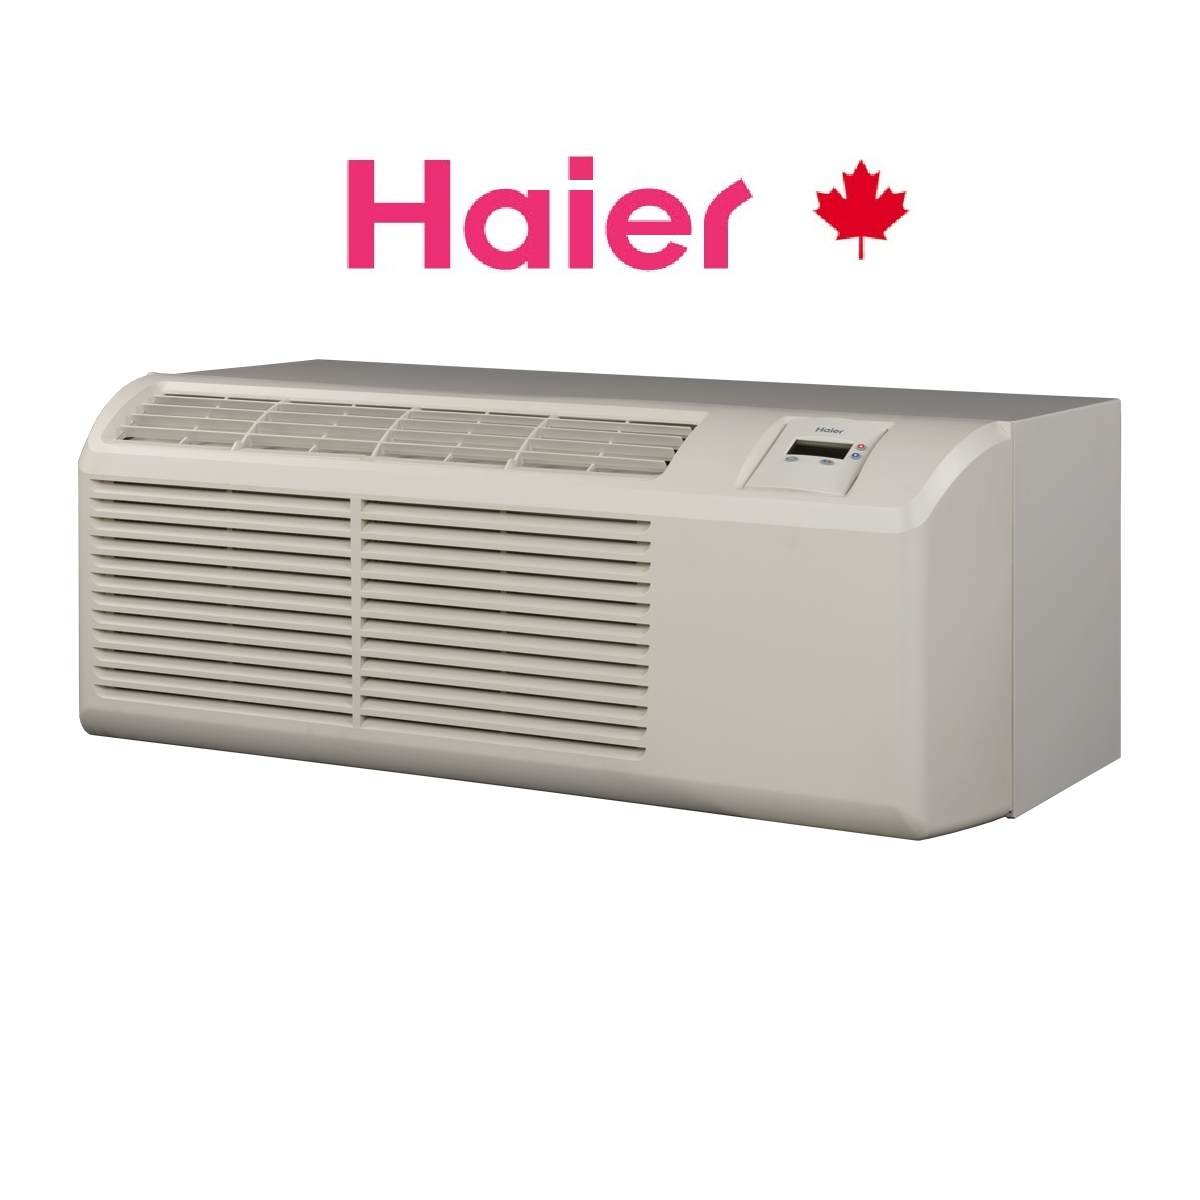 HAIER PTAC UNITS PTCH1201UAC COOLING AND HEATING